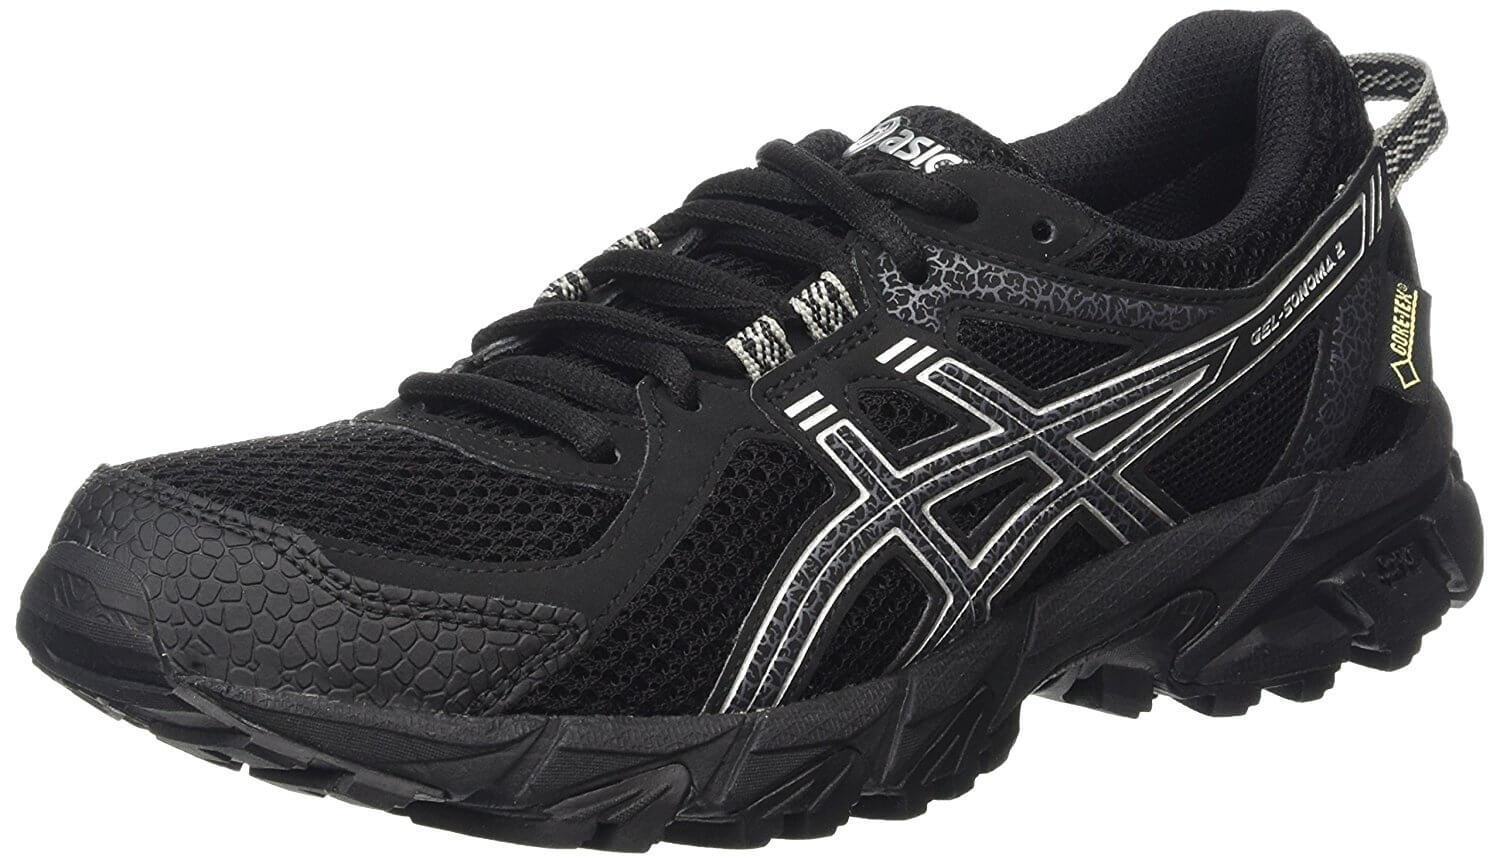 Asics Gel Sonoma 2 GTX Reviewed & Rated